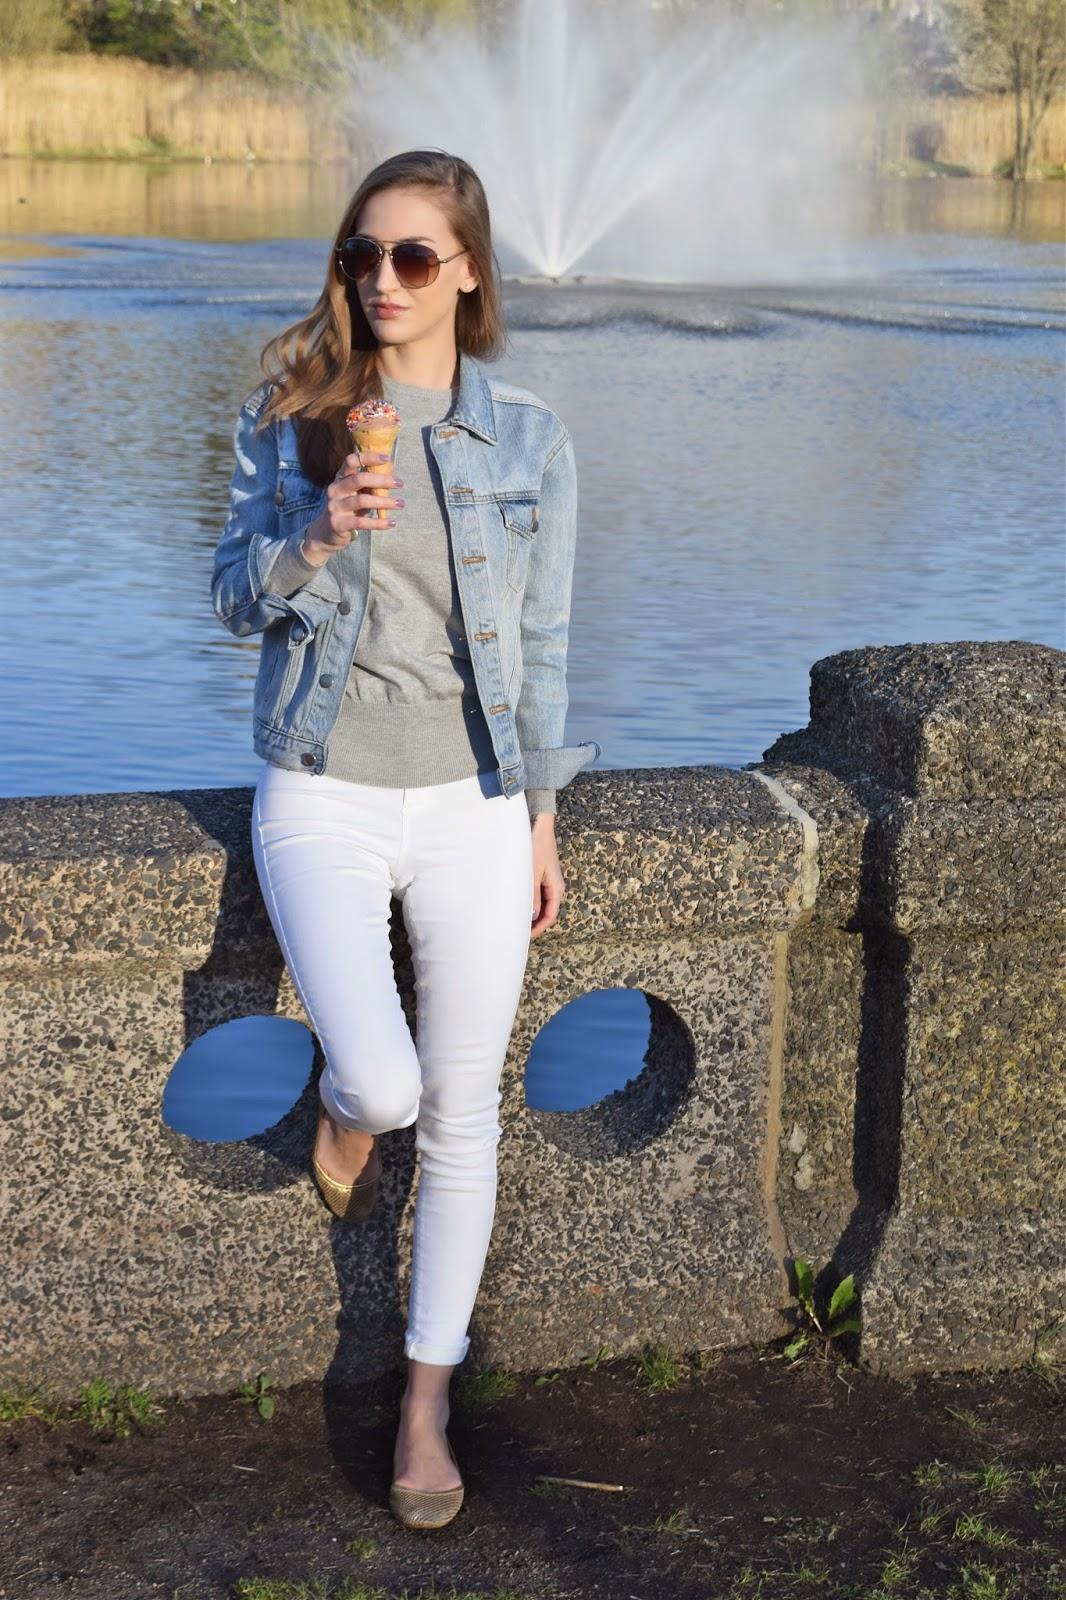 Branch Brook Park, Wearing light denim Jacket, TopShop White Jeans